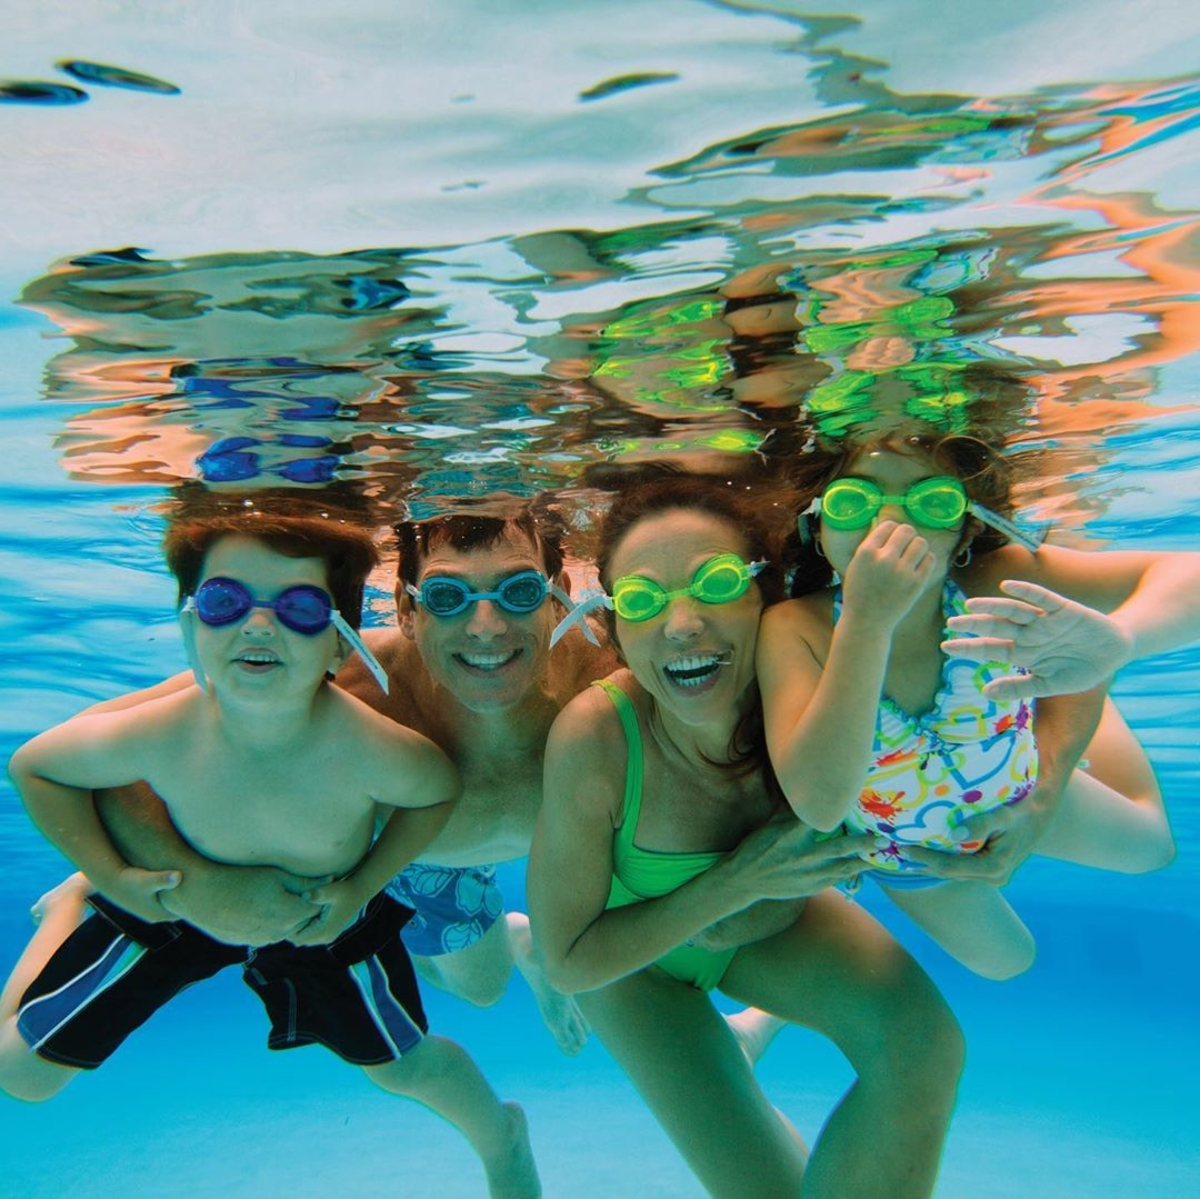 Dive into a weekend of family fun with us.  (Photo Credit: @kiddosmagazine) https://t.co/M0Ew4VUoYh